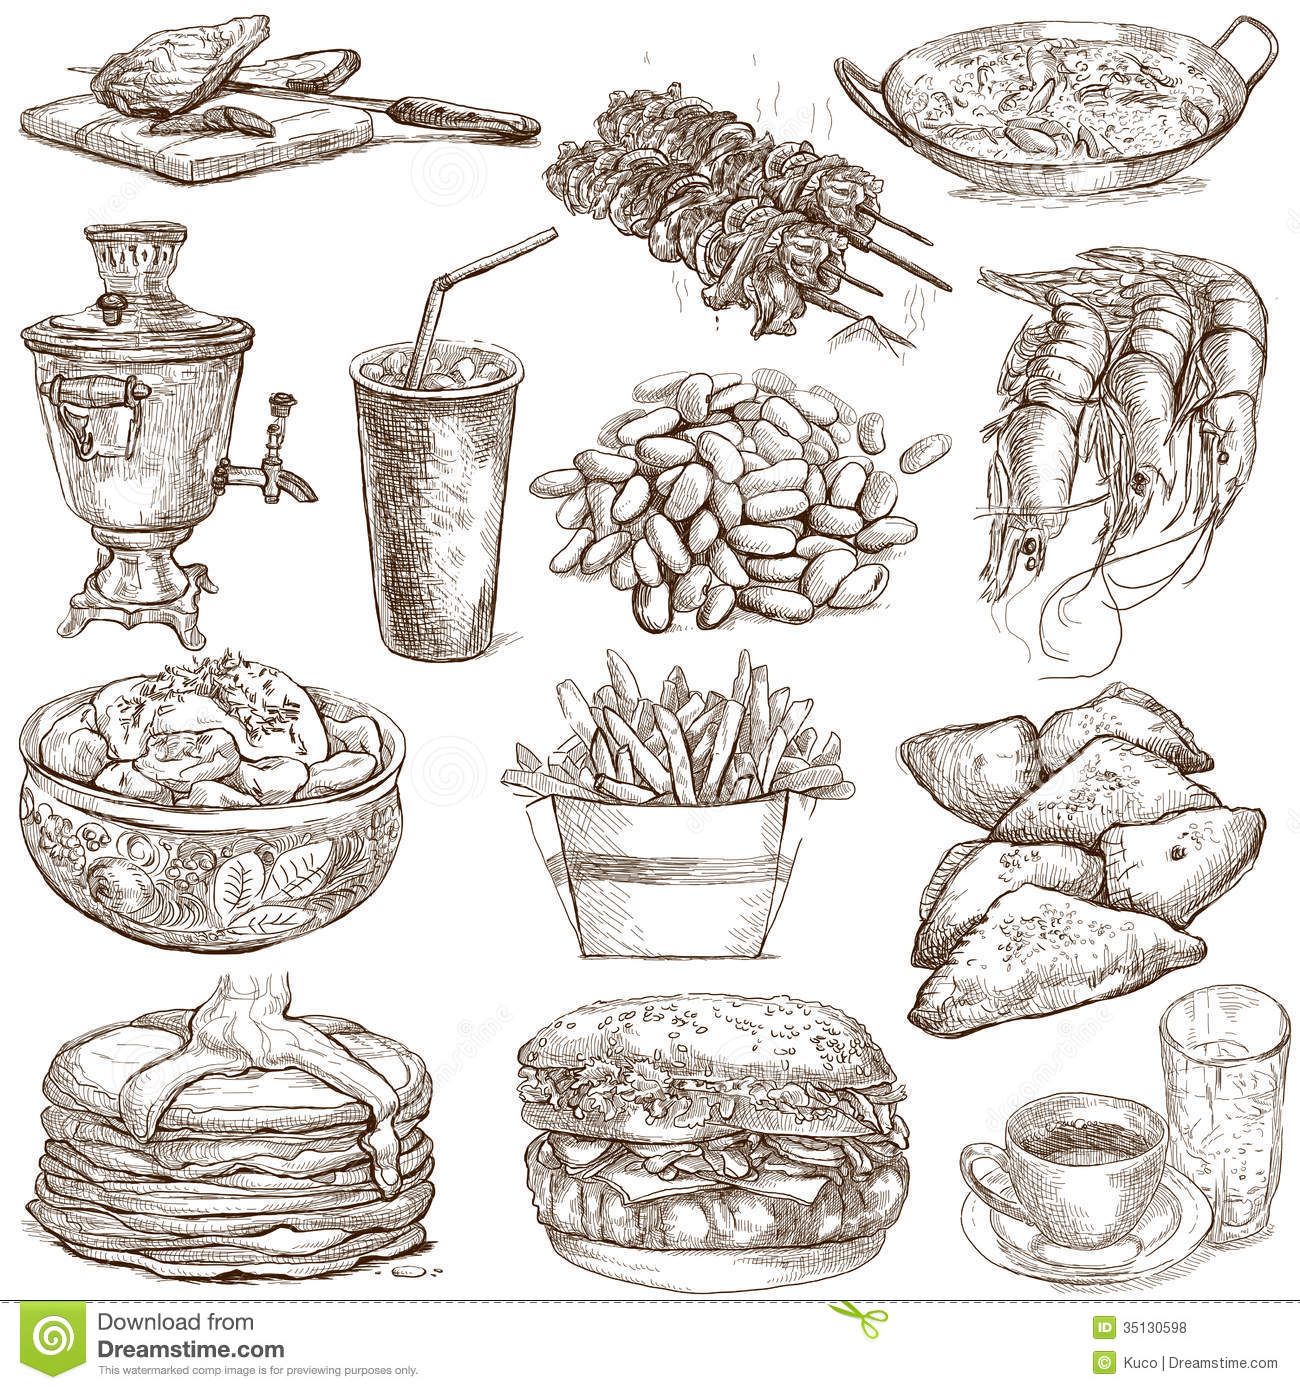 food drinks drawings drawn illustration around illustrations hand sized vector animals preview